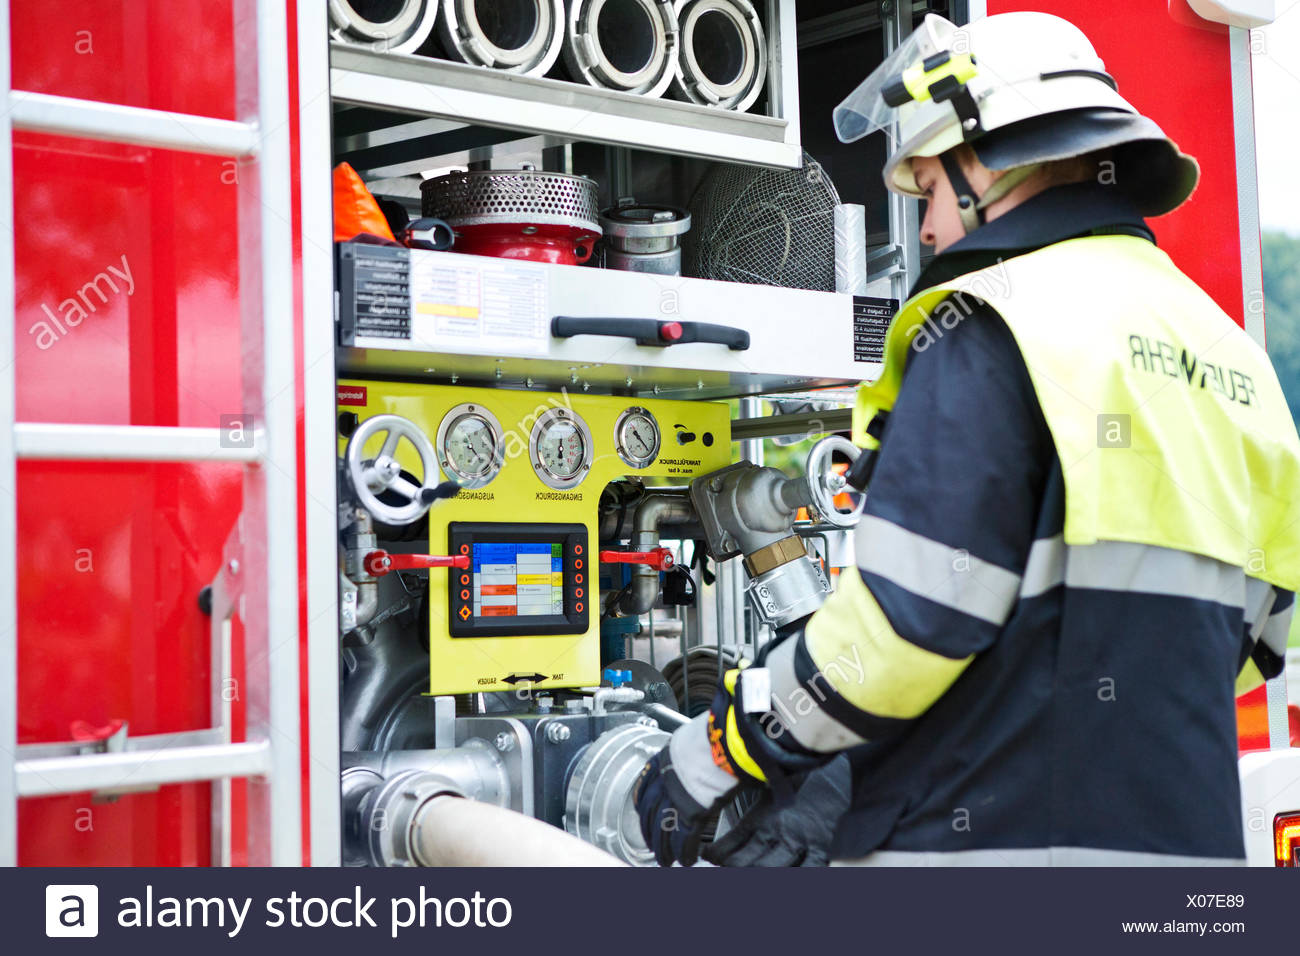 Firefighter at fire engine - Stock Image